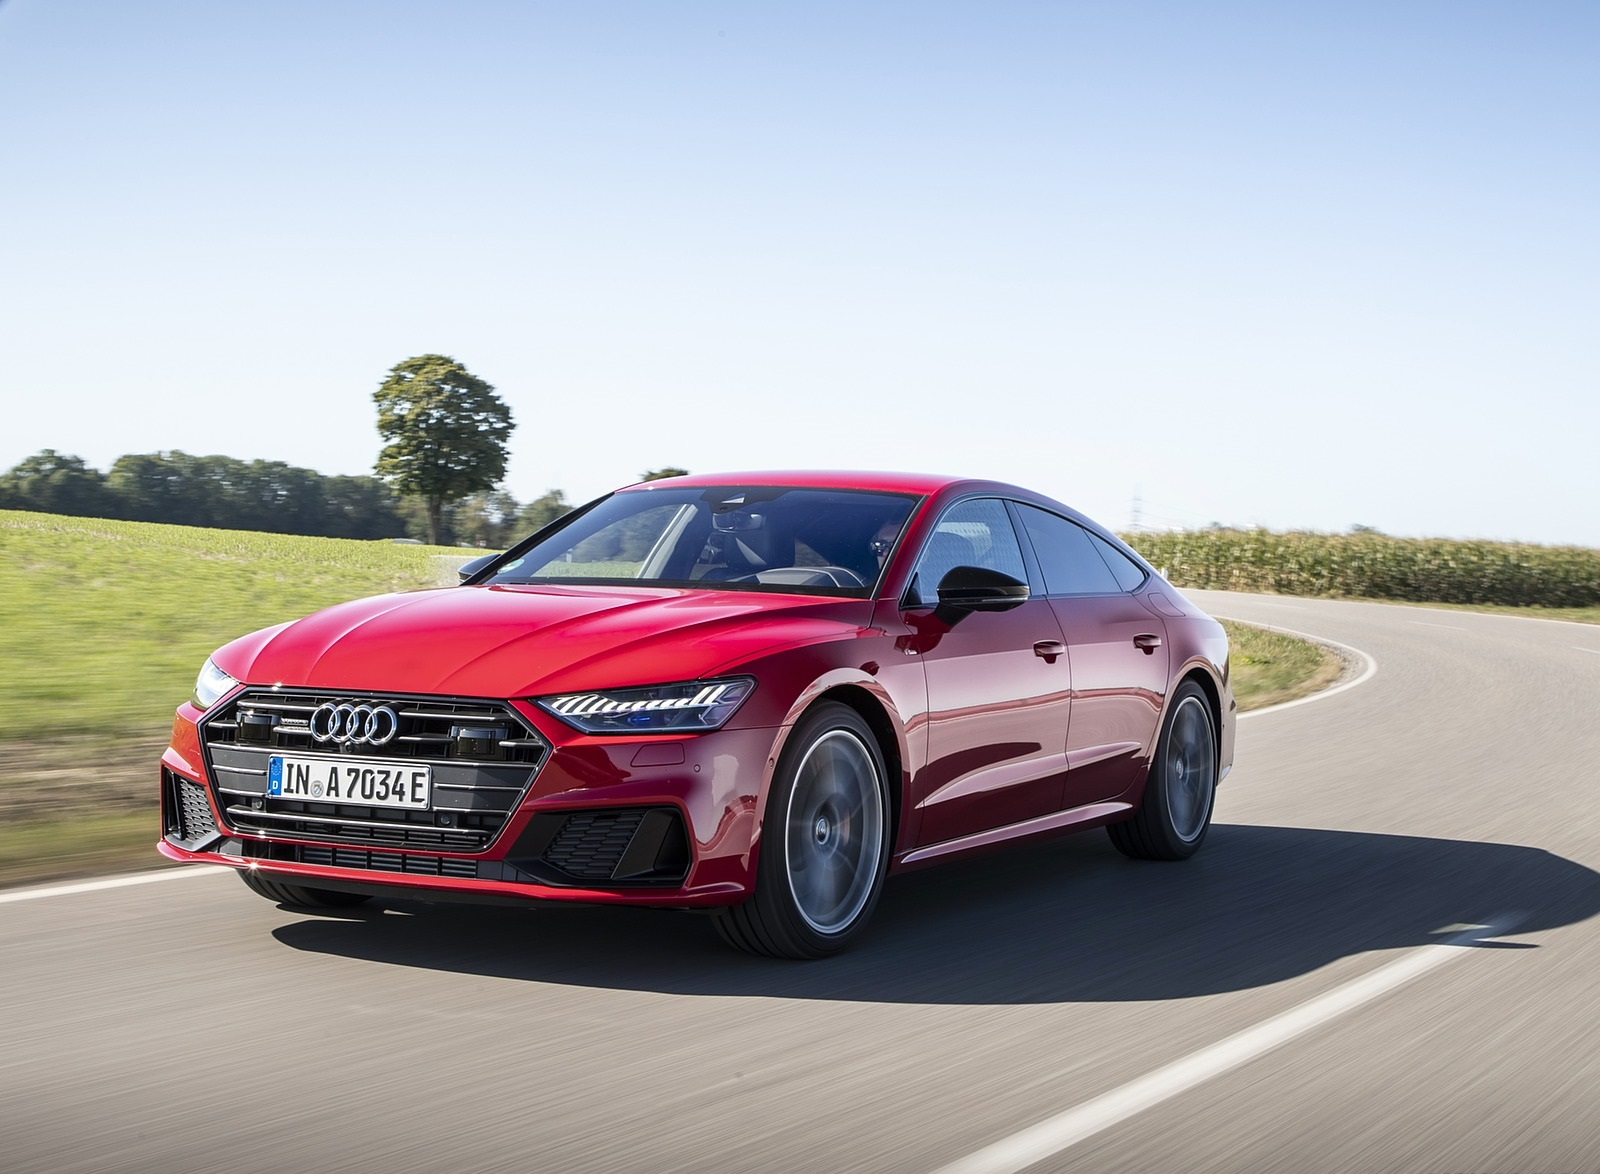 2020 Audi A7 Sportback 55 TFSI e quattro Plug-In Hybrid (Color: Tango Red) Front Three-Quarter Wallpapers (2)